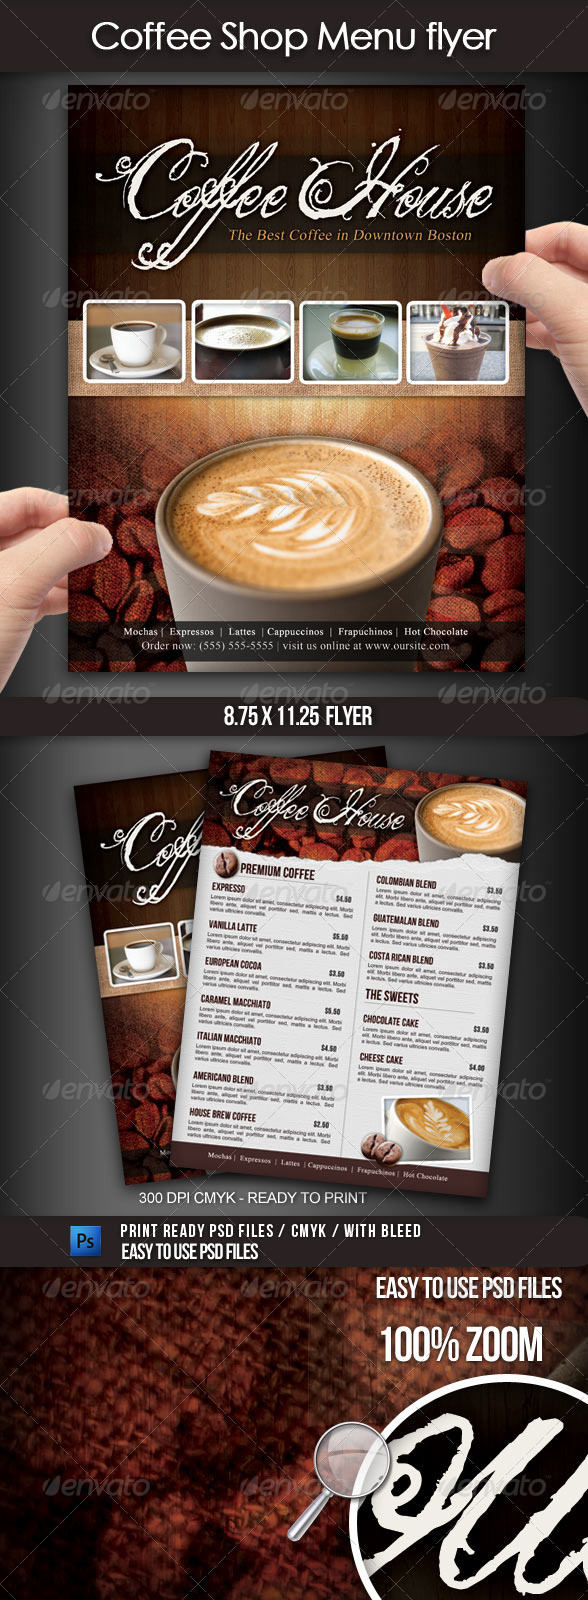 Coffee Shop Menu Flyer - Flyers Print Templates